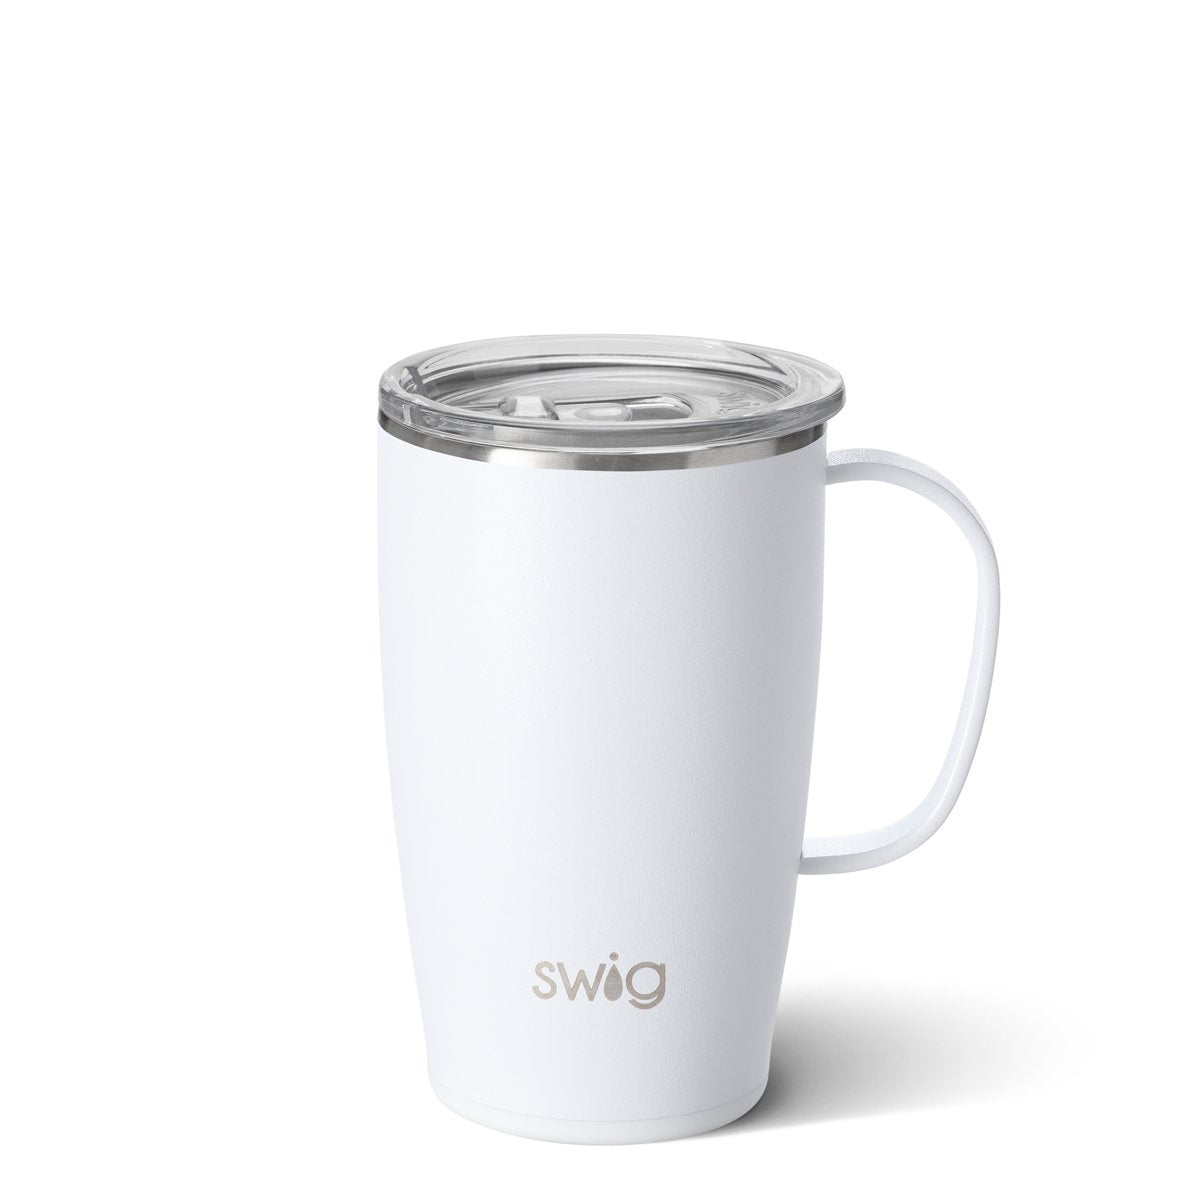 SWIG - 18 OZ MUG IN MATTE WHITE